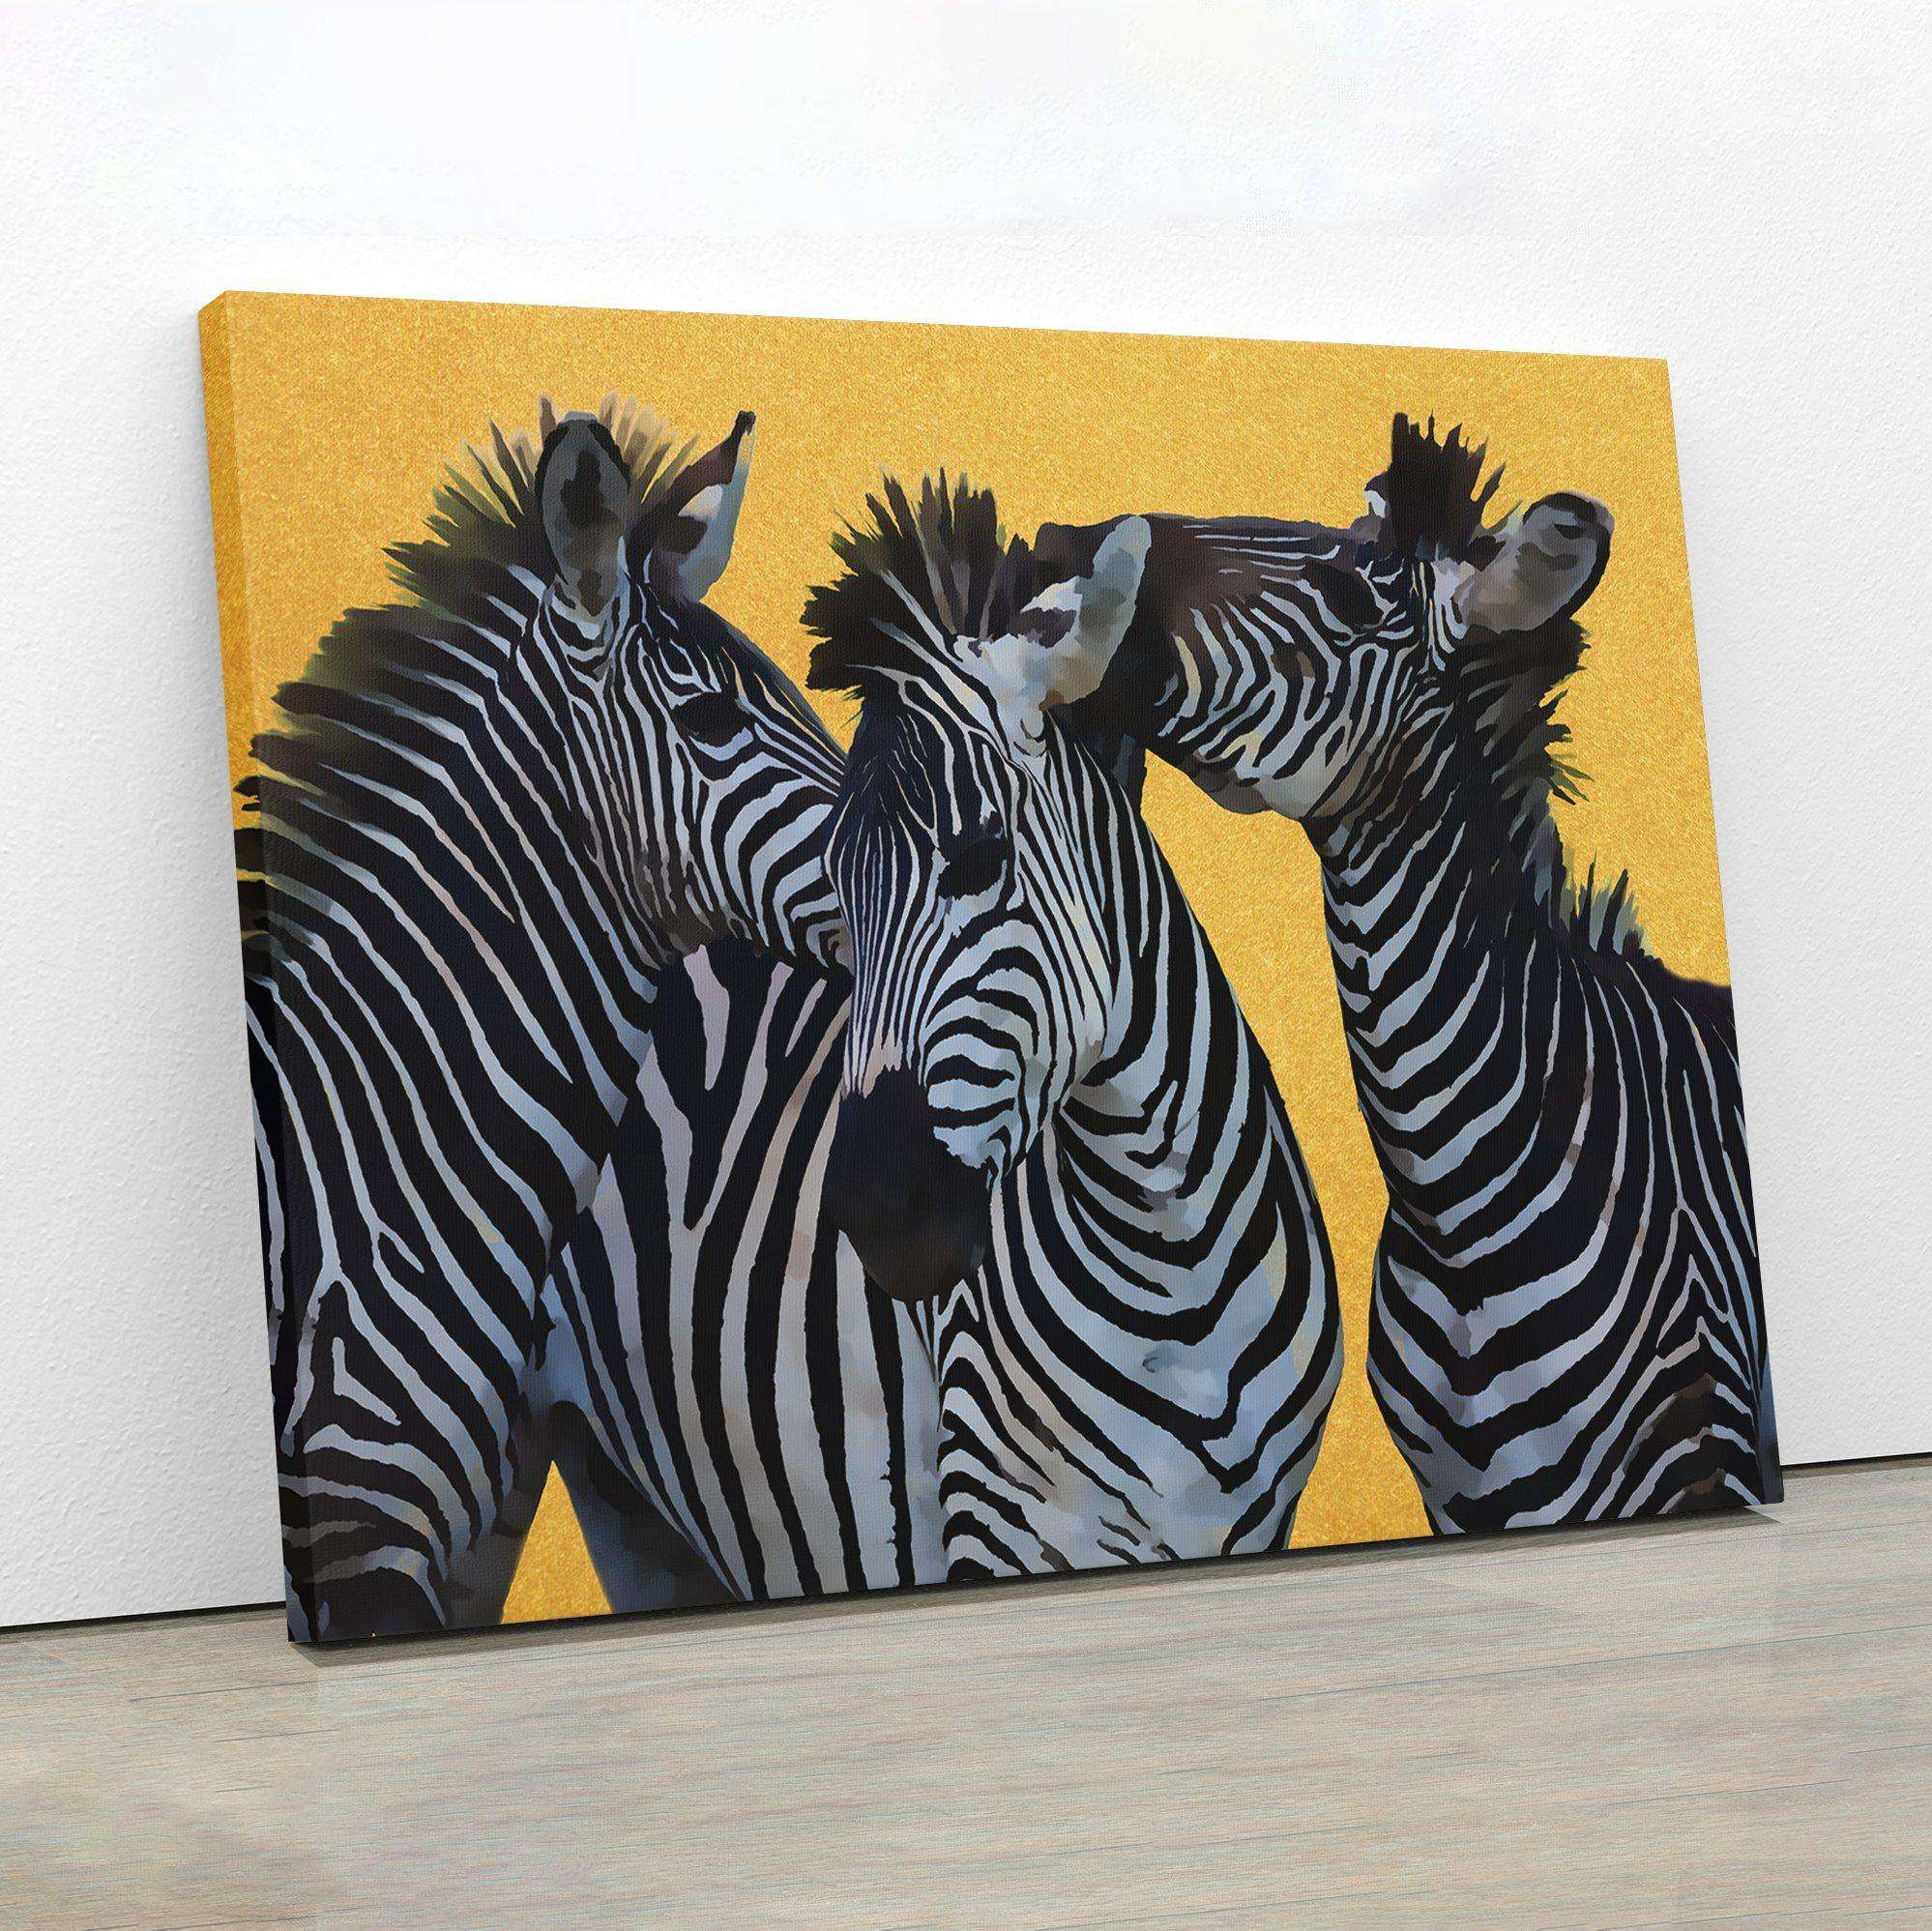 Zebras In Gold Canvas Wall Art